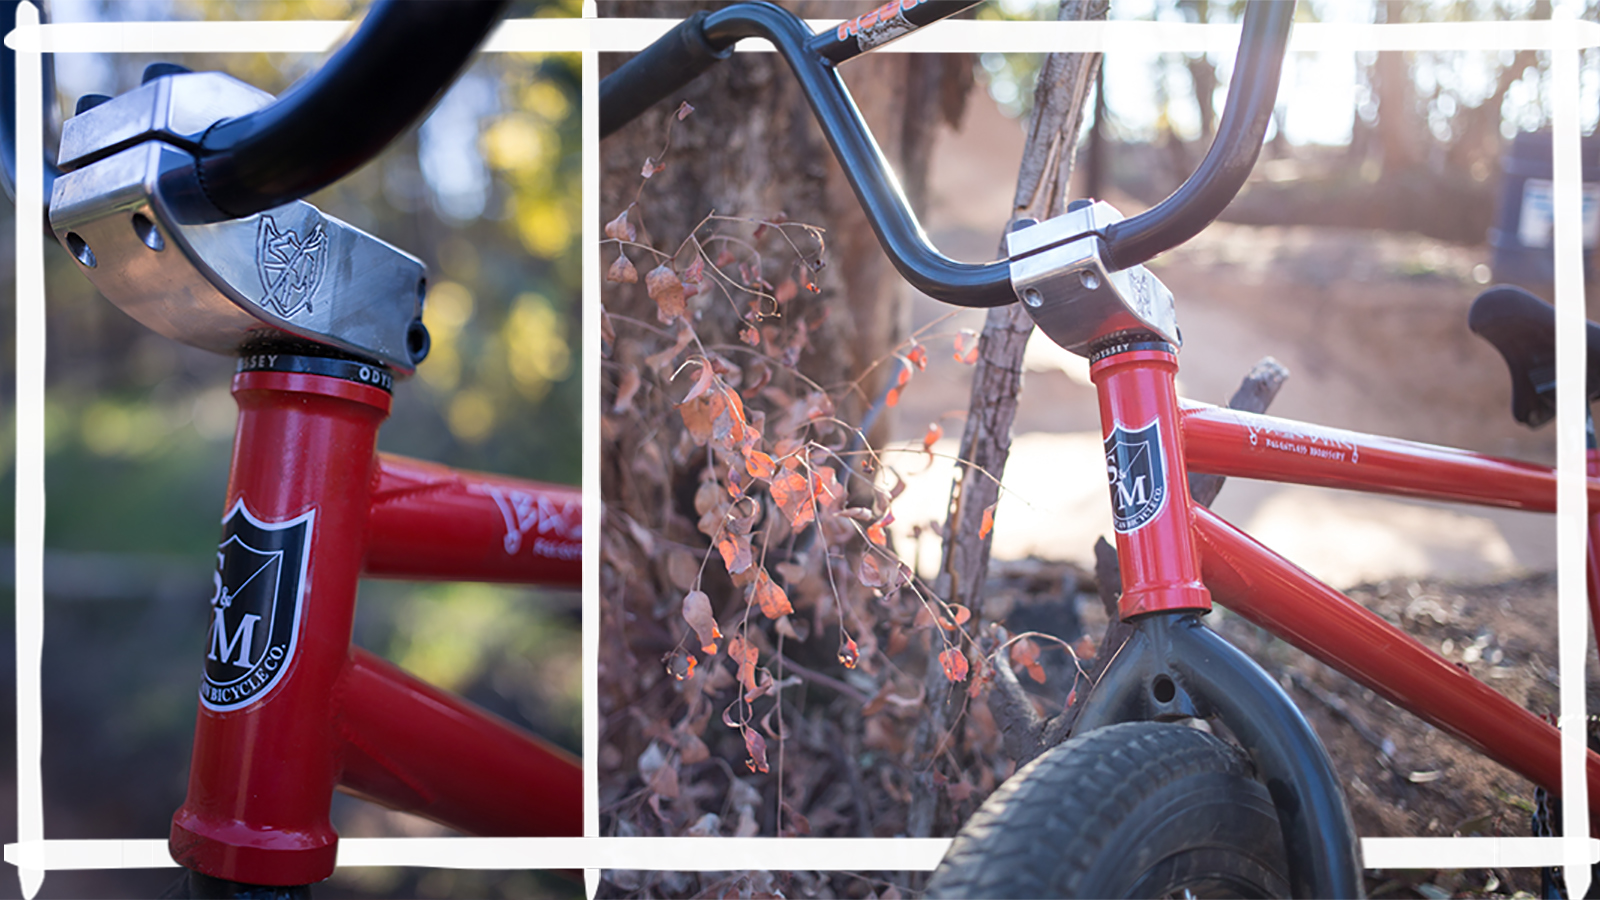 Hoder High Bars / Enduro Stem